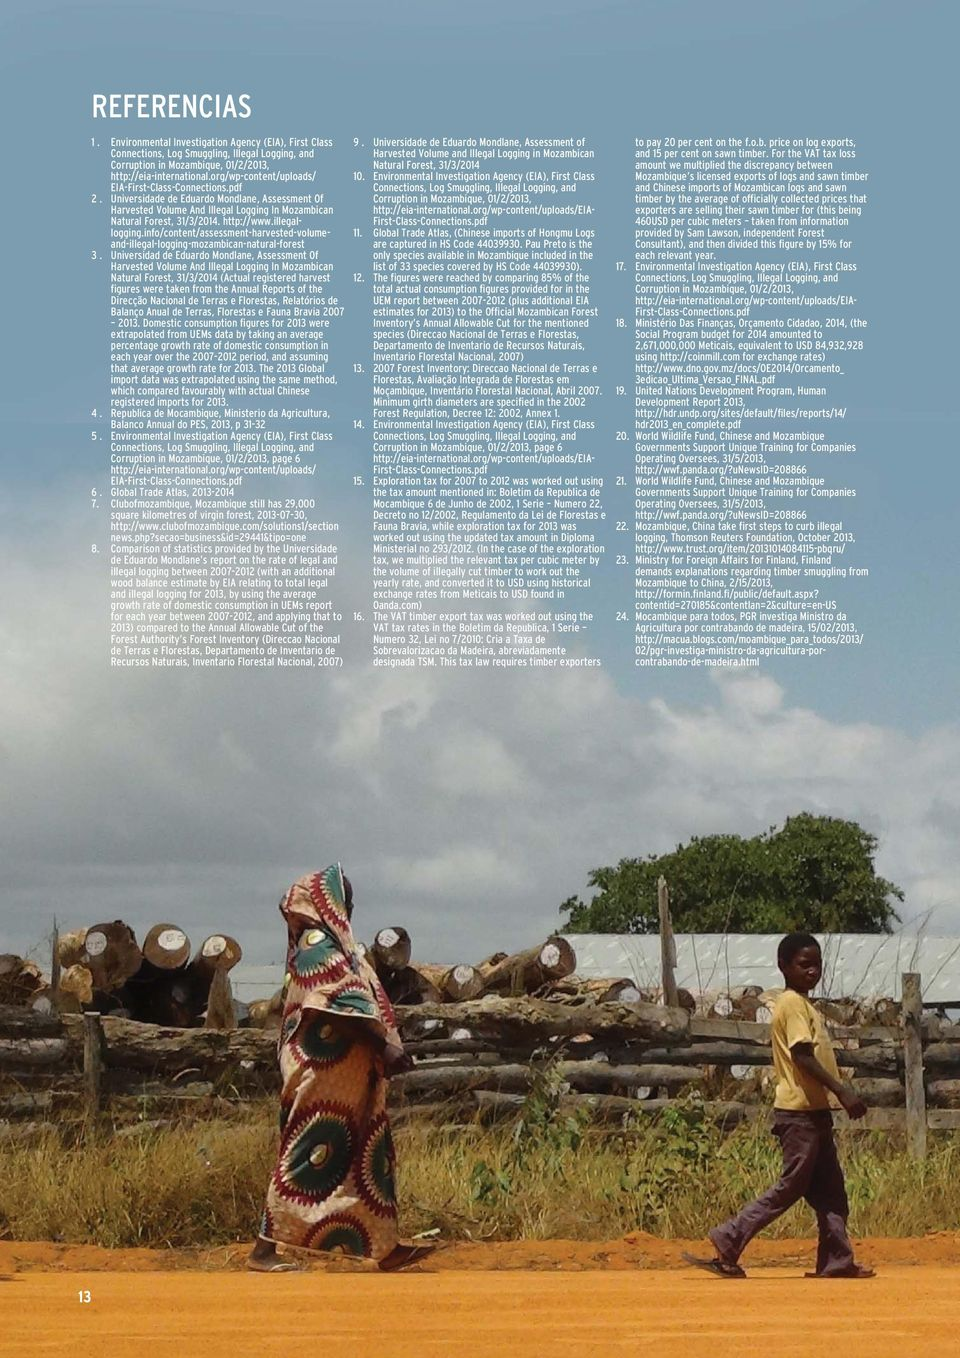 illegallogging.info/content/assessment-harvested-volumeand-illegal-logging-mozambican-natural-forest 3.